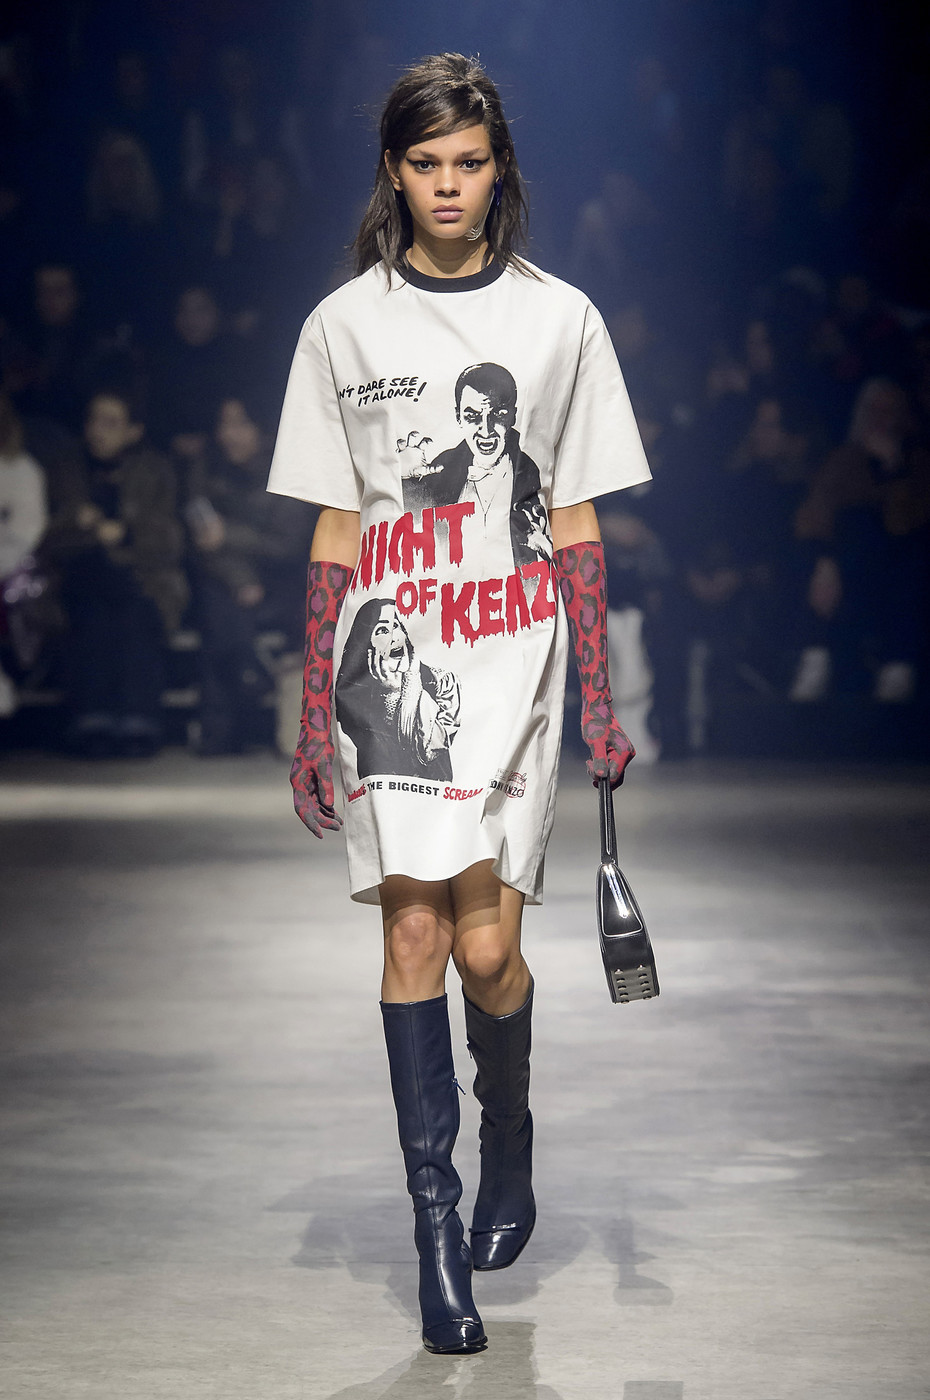 Kenzo Fall 2018 Runway Pictures Livingly